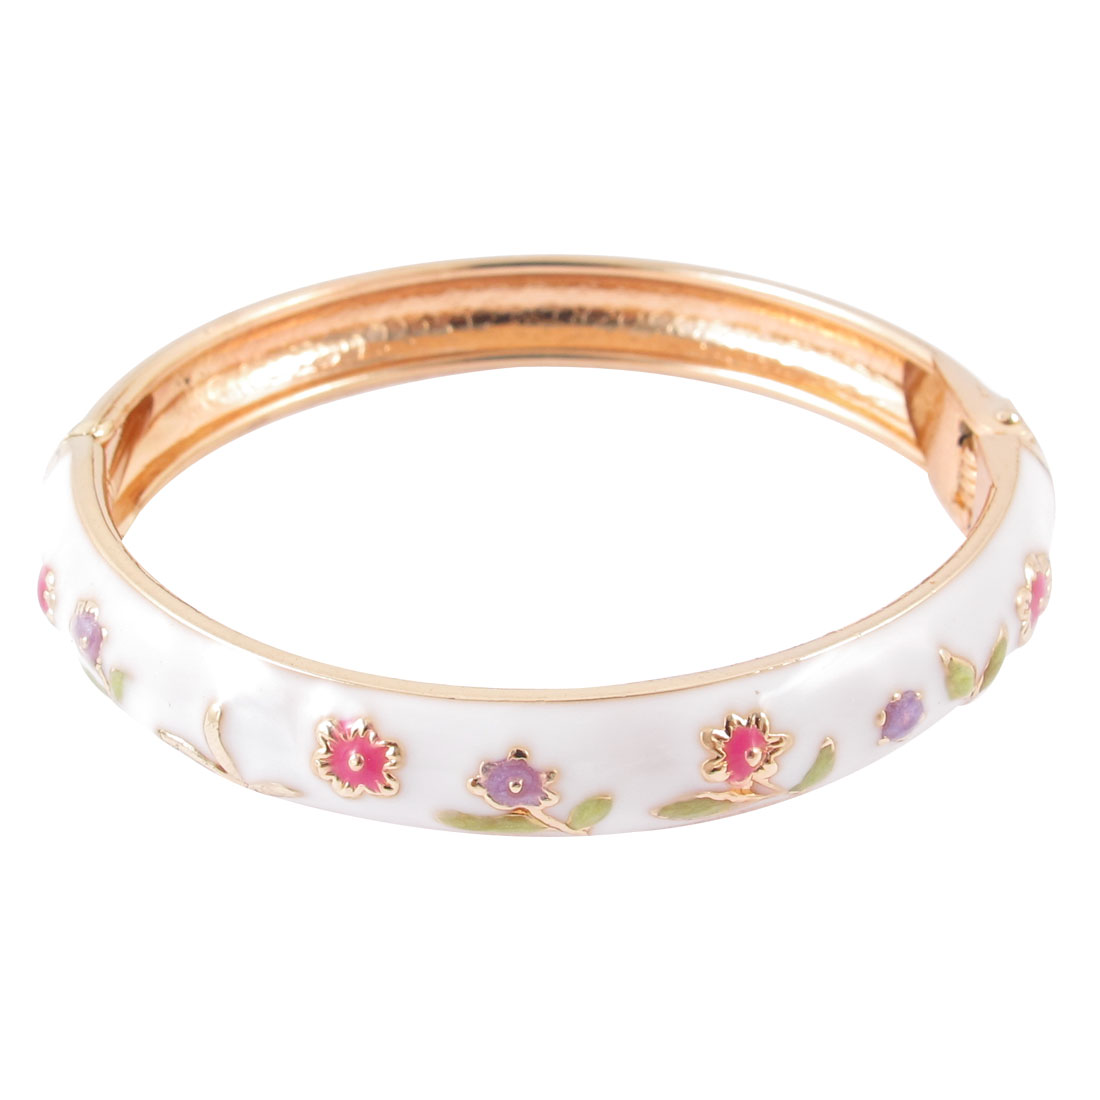 Girl Wrist Wear Spring Closure Flower Enamel Round Bracelet Bangle White